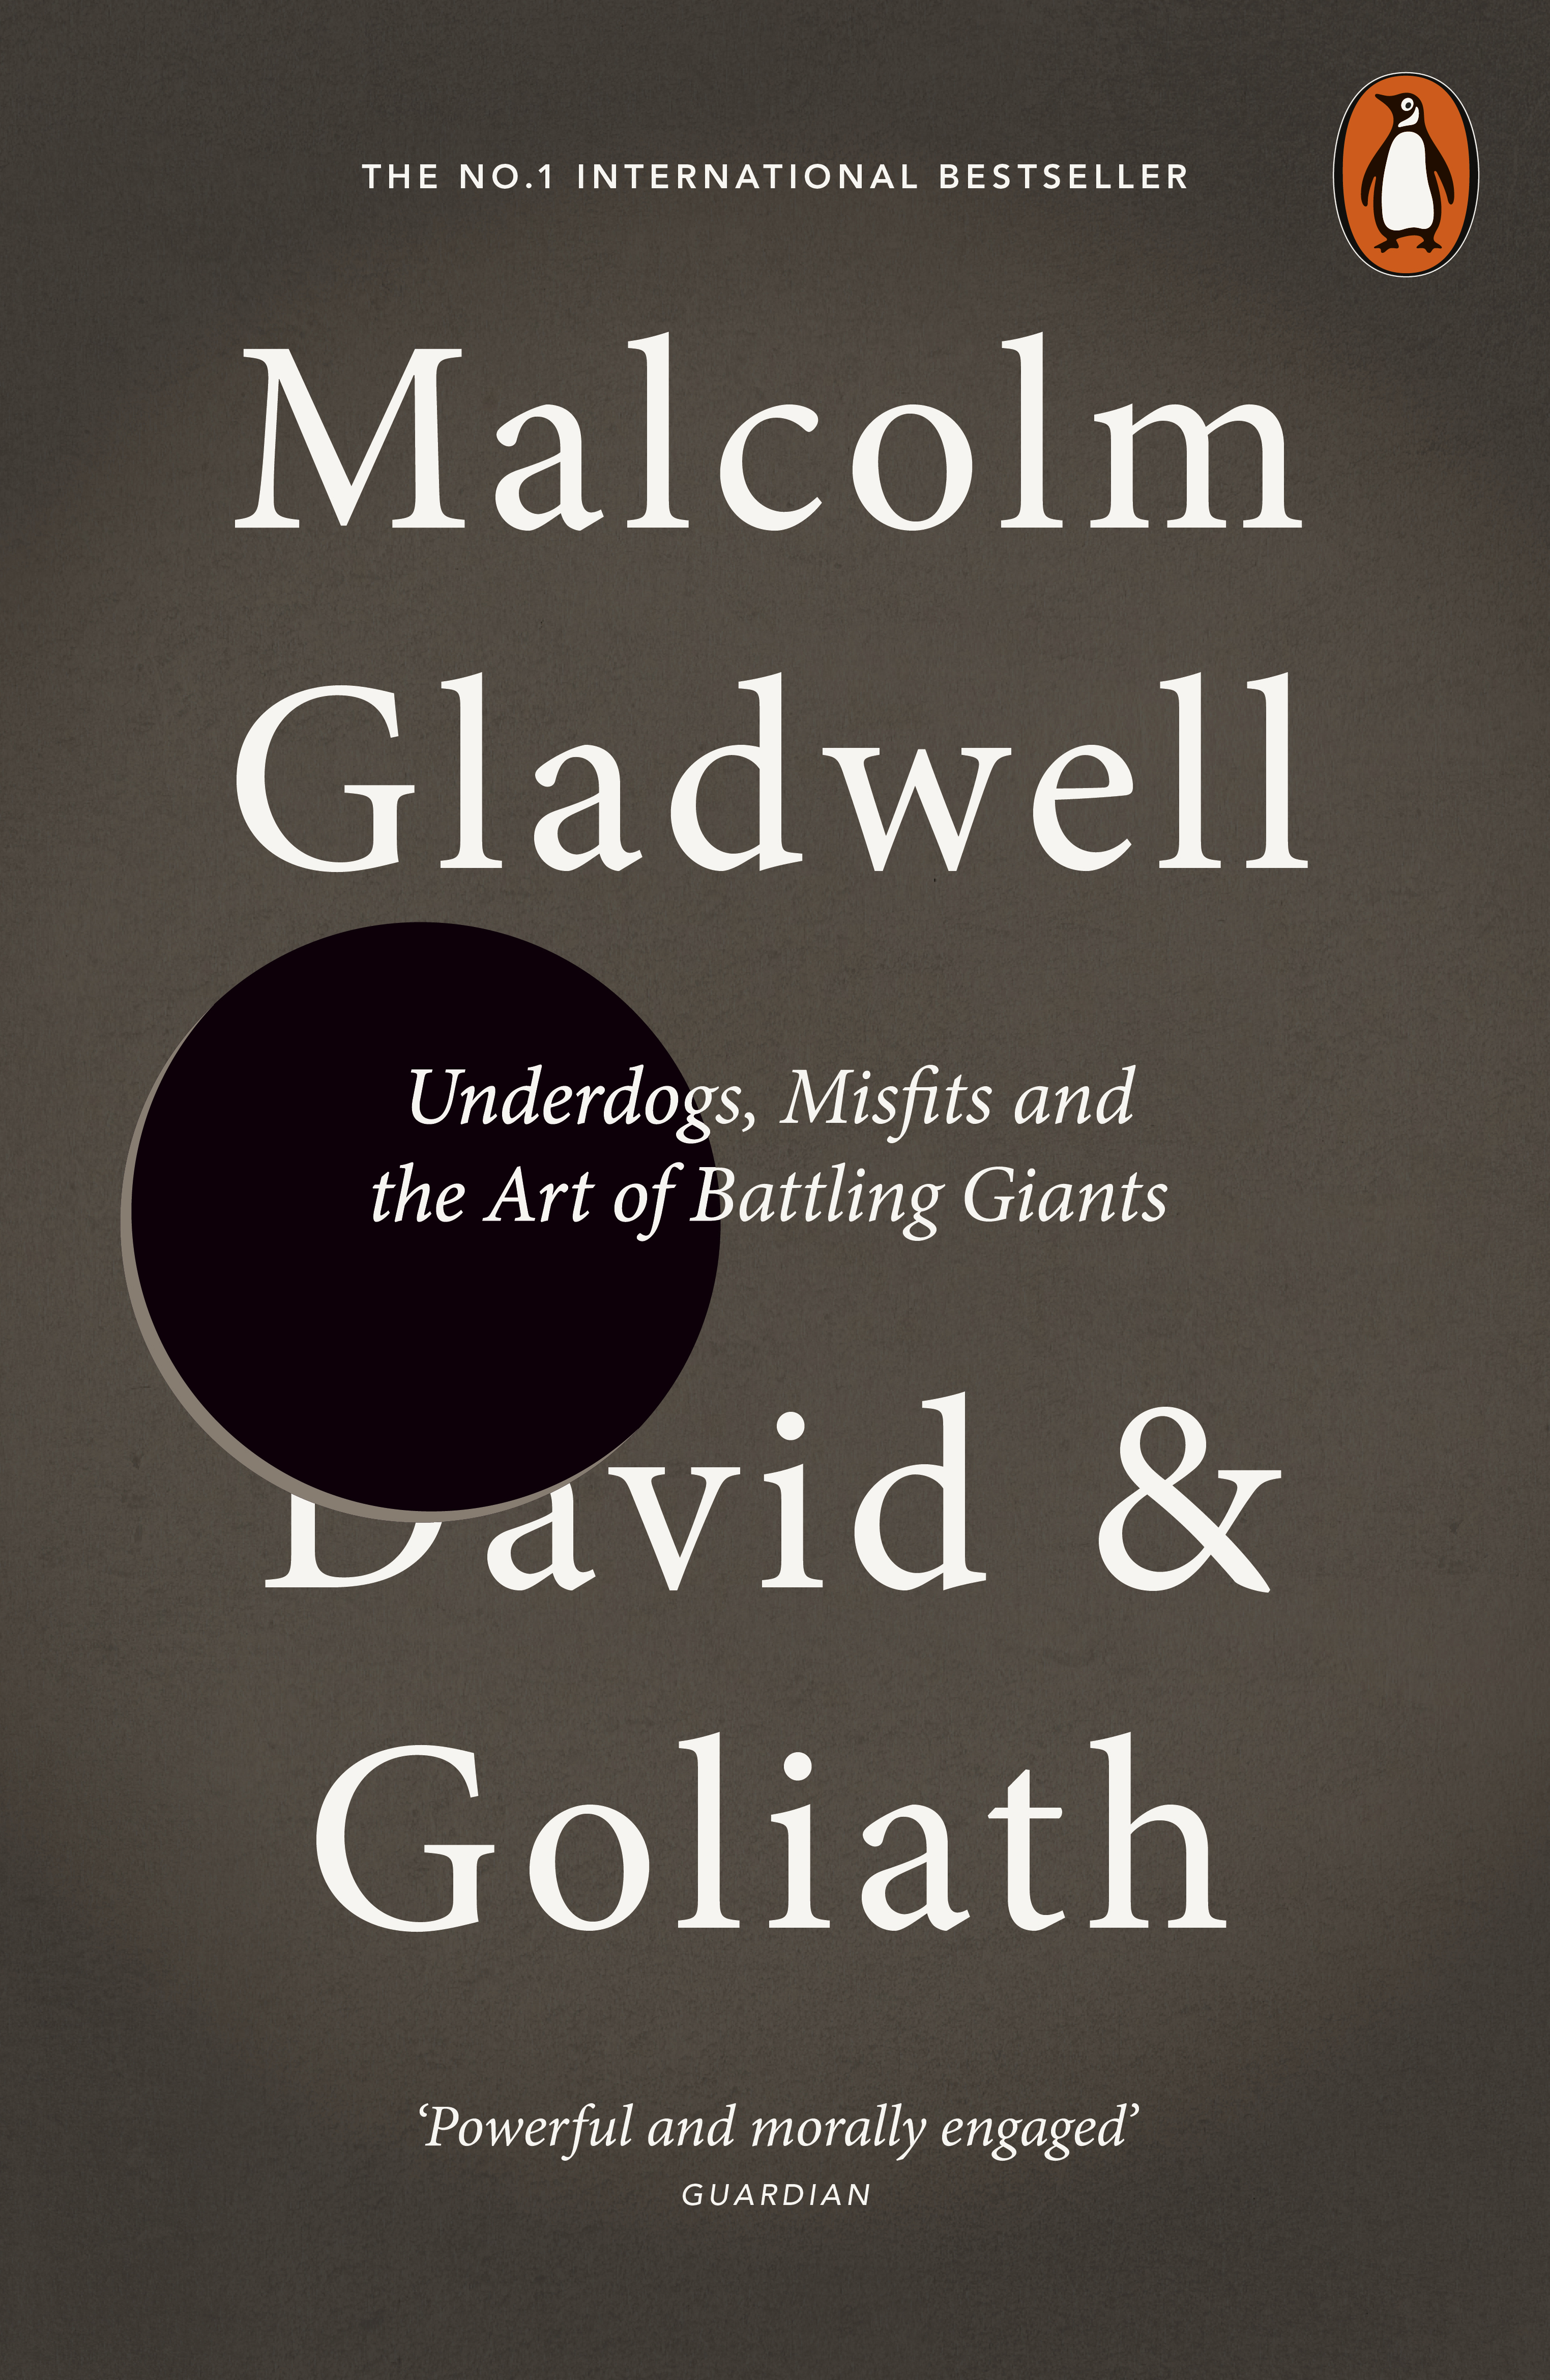 David and Goliath by Malcolm Gladwell, ISBN: 9780241959596